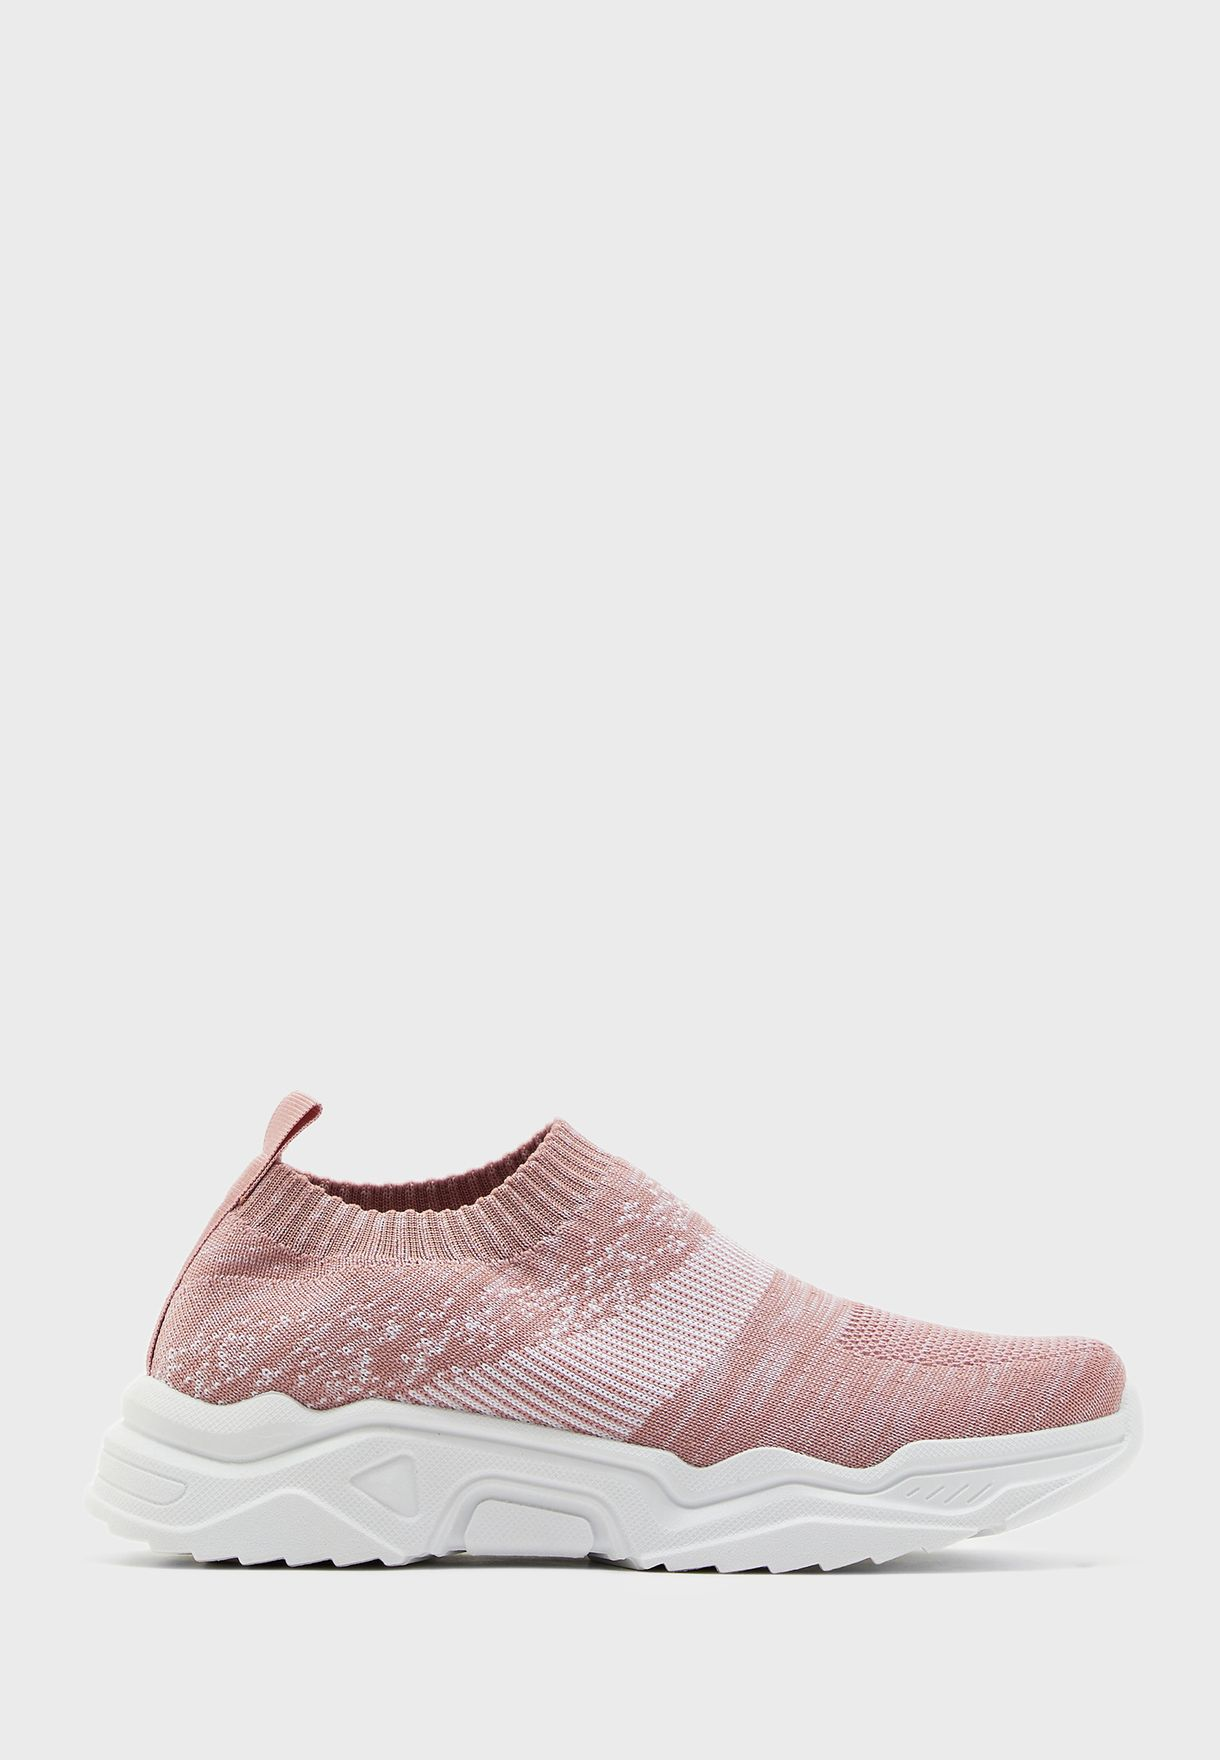 Marl Knit Slip On Sneakers